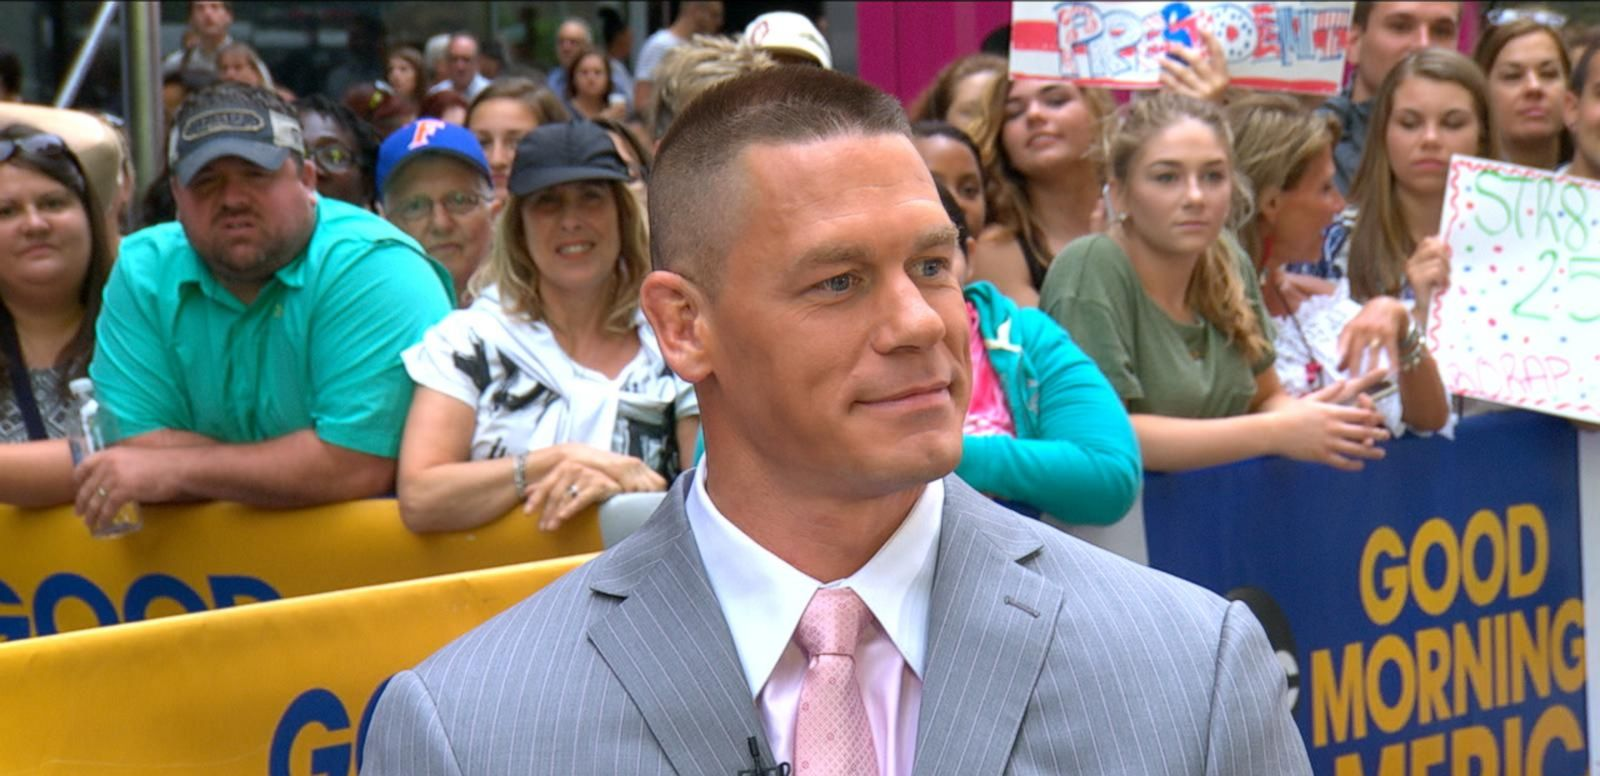 VIDEO: ESPYs 2016: Special Award and WWE Star John Cena Live on 'GMA'